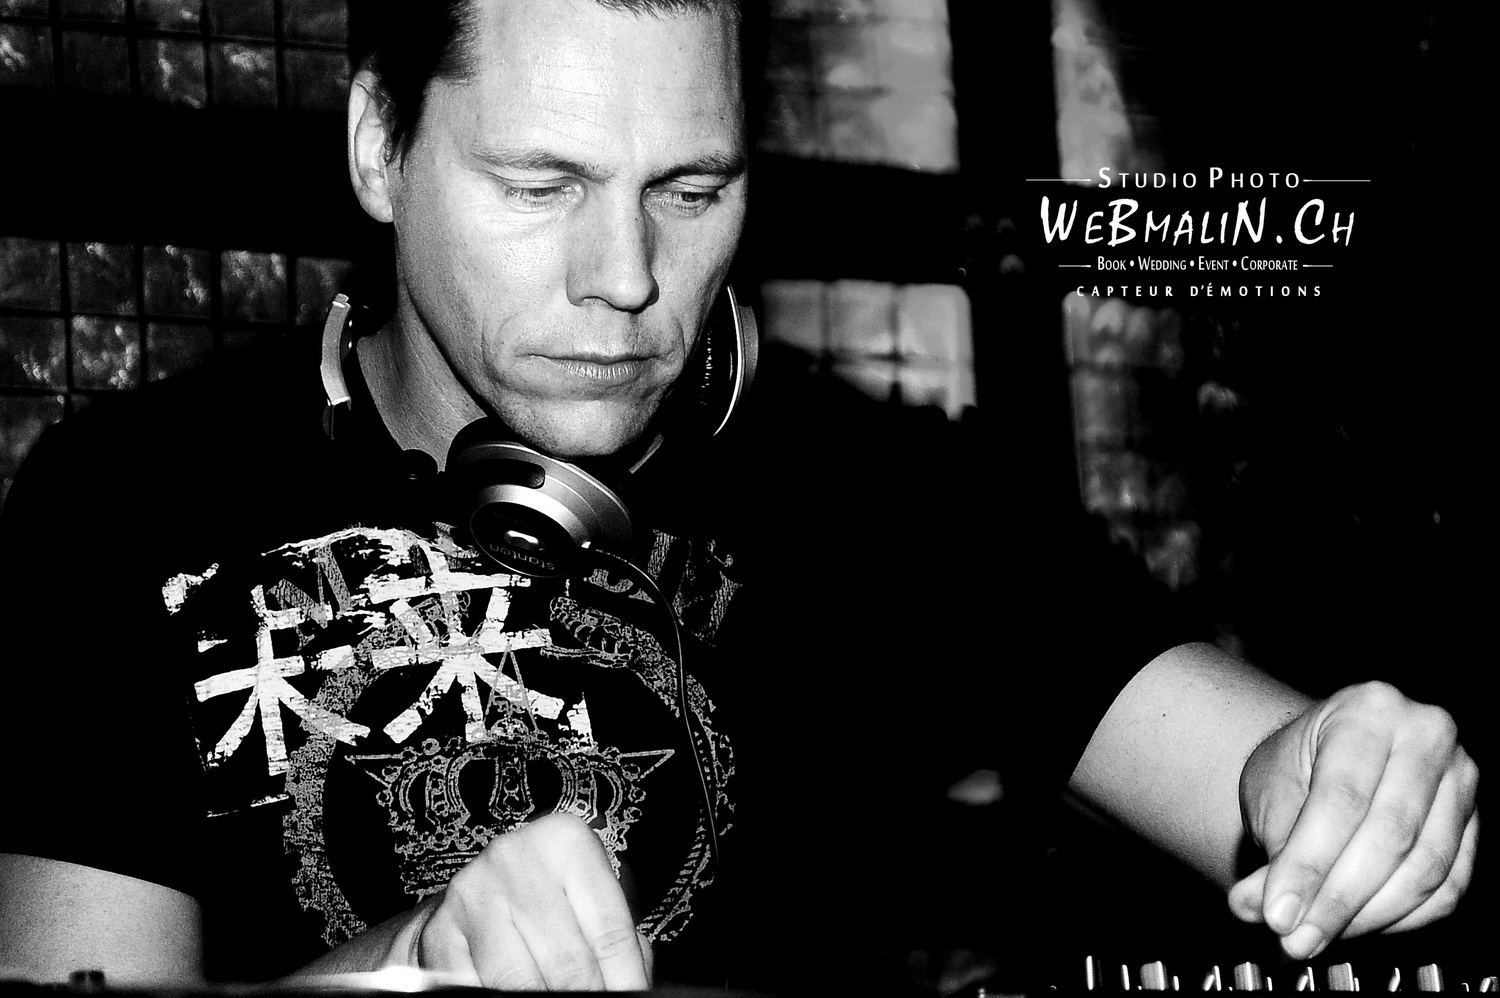 Portfolio - Clubbing - Magic- Finger Dj - Tiesto